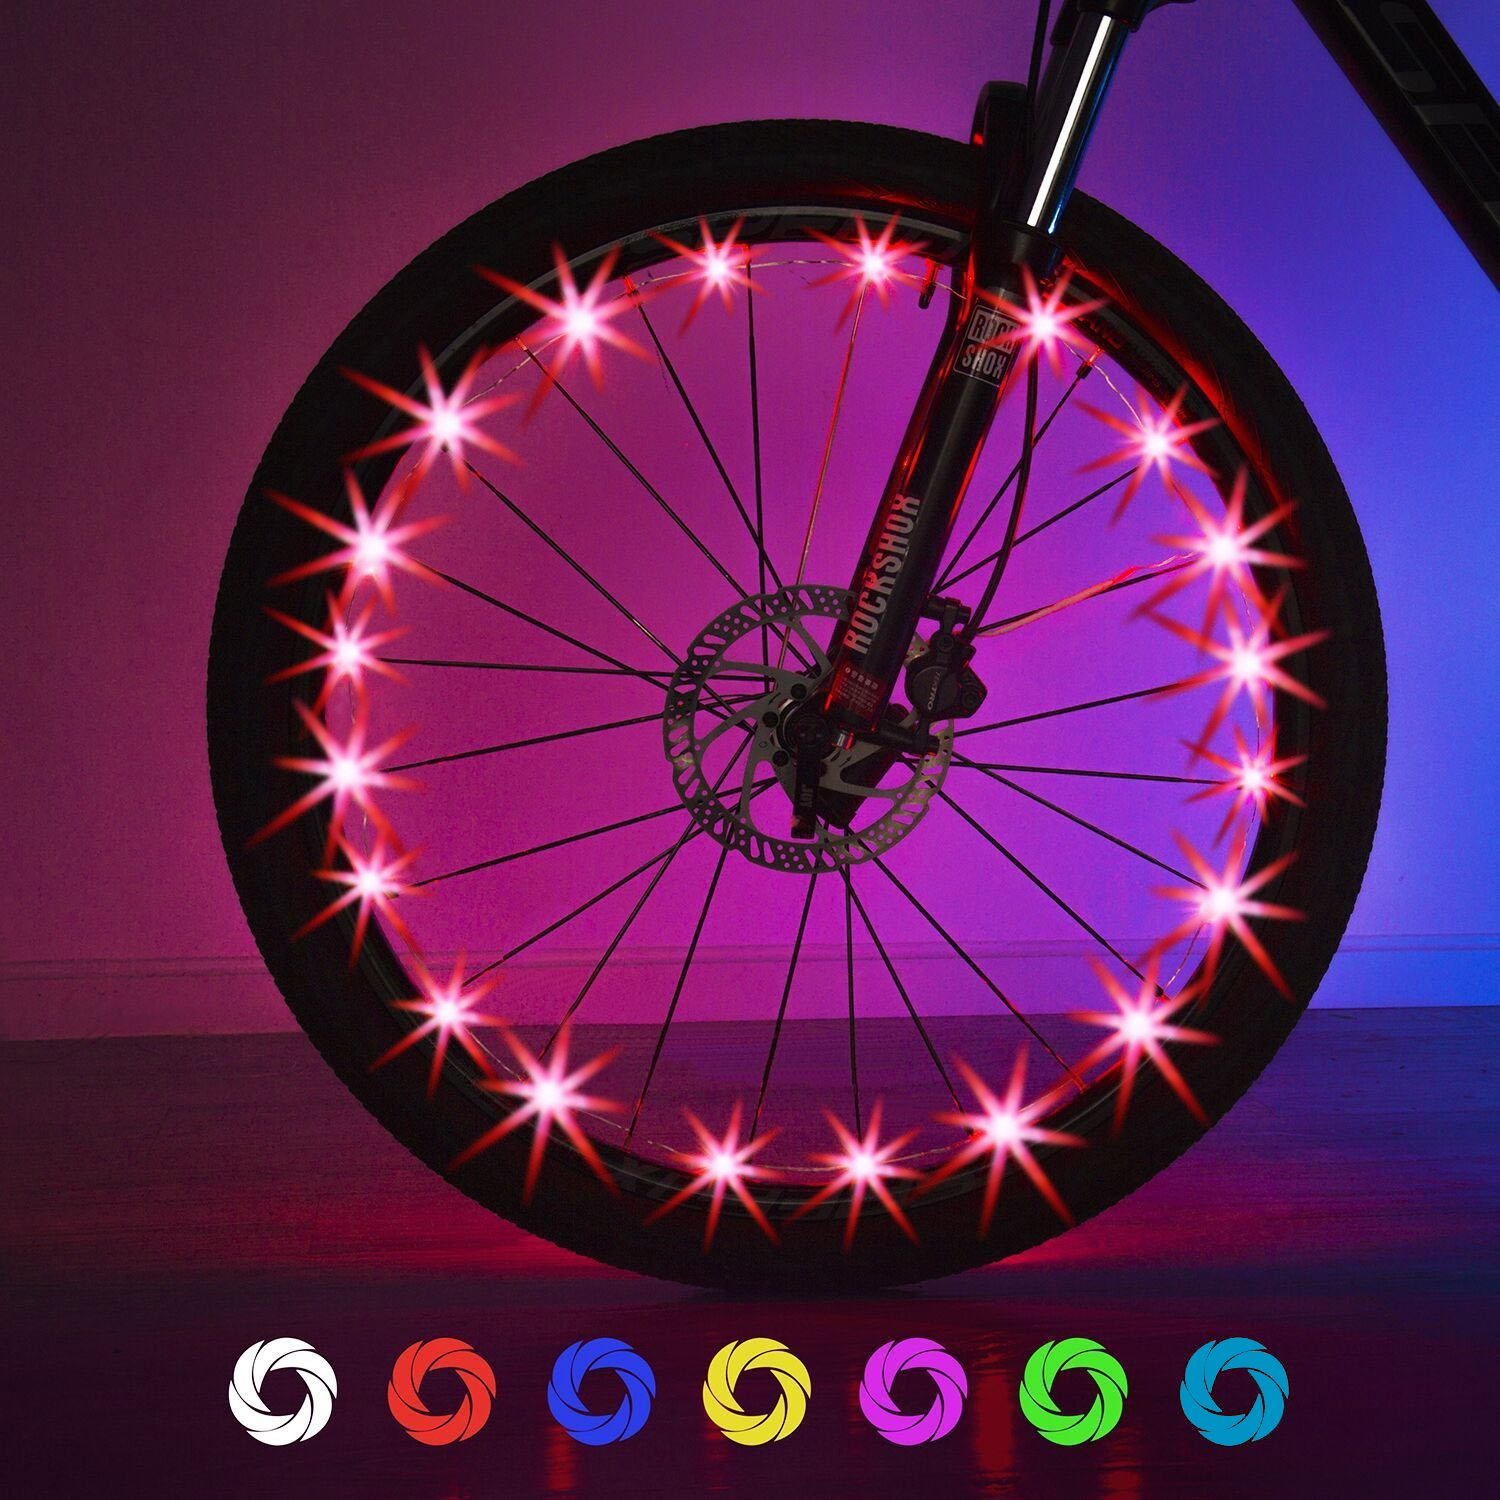 Exwell Bike Wheel Lights, 7 Colors in 1 Bike lights,Safety at Night,Switch 9 Modes LED Bike Accessories Lights, USB rechargeable 1 PACK